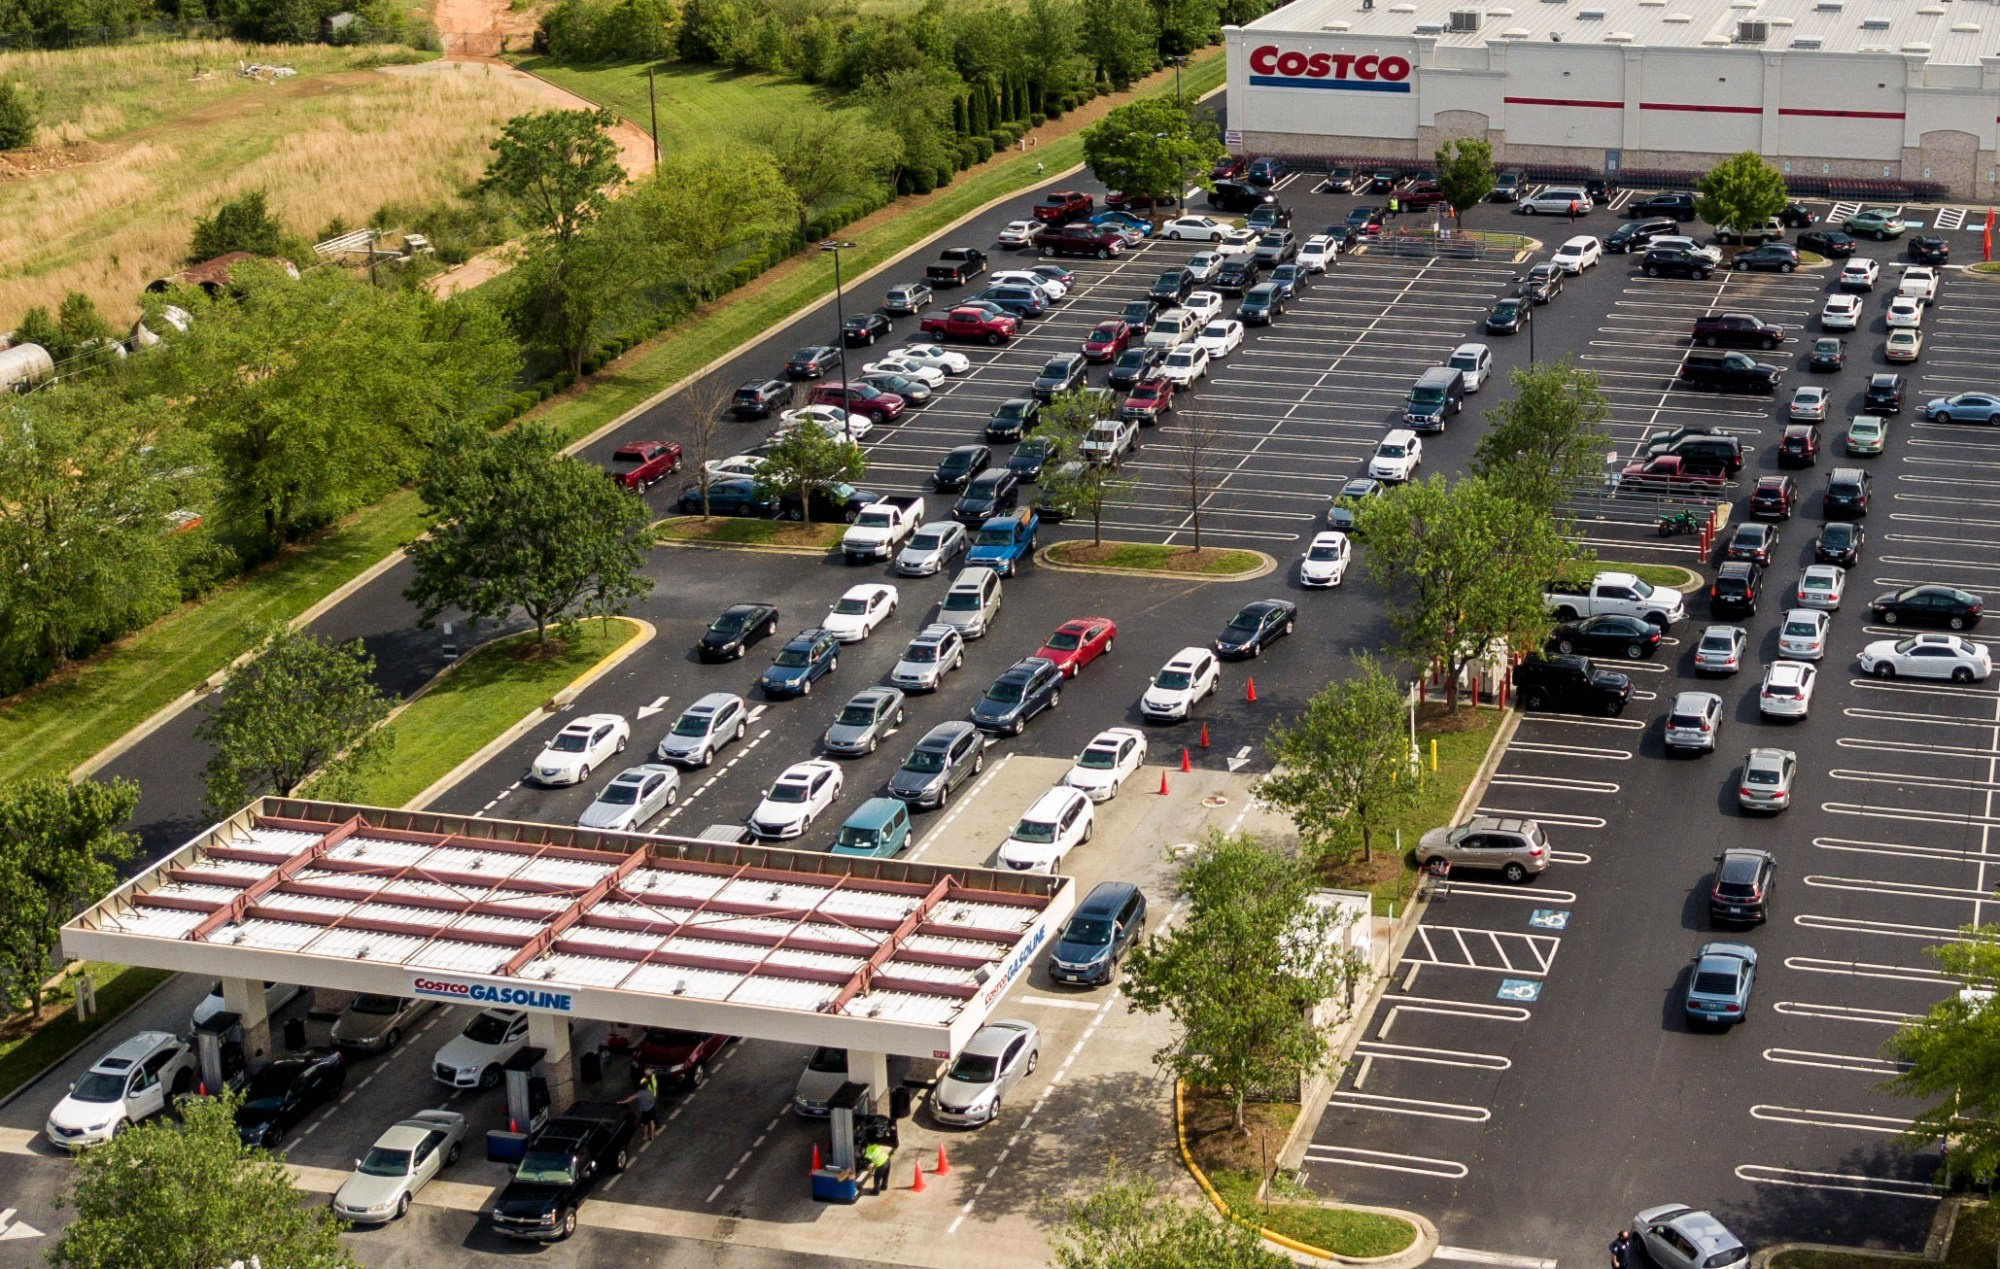 In this aerial image taken with a drone, numerous vehicles line up for gasoline at Costco on Wendover Avenue in Greensboro, N.C., on Tuesday, May 11, 2021. As the shutdown of a major fuel pipeline entered into its fifth day, efforts are under way to stave off potential fuel shortages, though no widespread disruptions were evident. The Colonial Pipeline, which delivers about 45% of the fuel consumed on the East Coast, was hit by a cyberattack on Friday. (Woody Marshall/News & Record via AP)